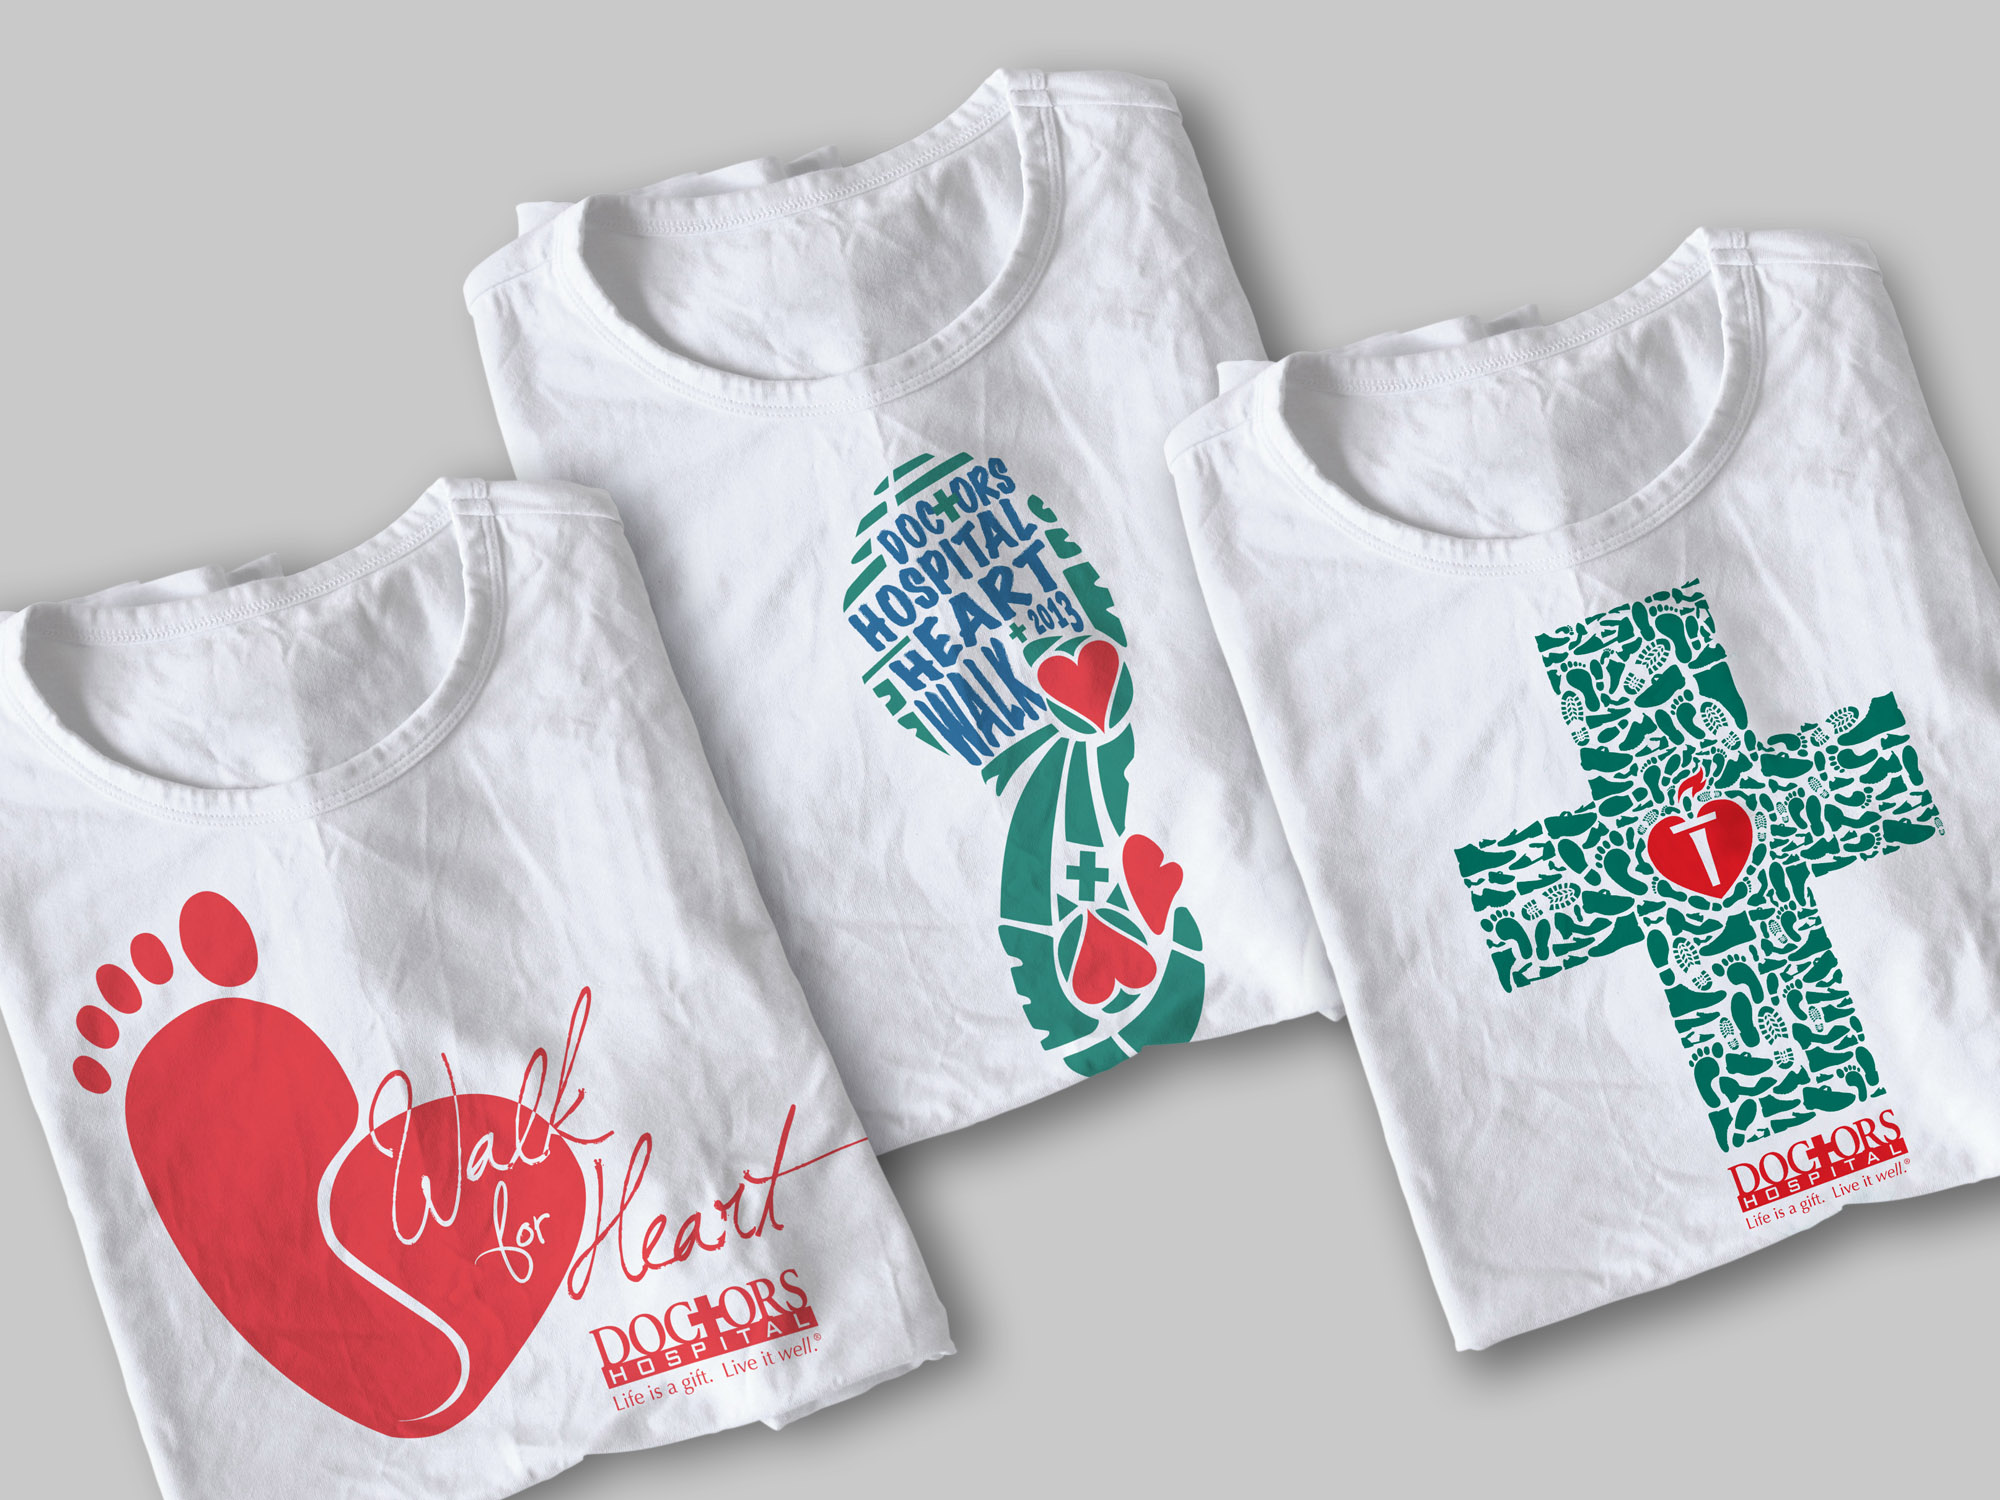 Heart Walk T-Shirt Concepts